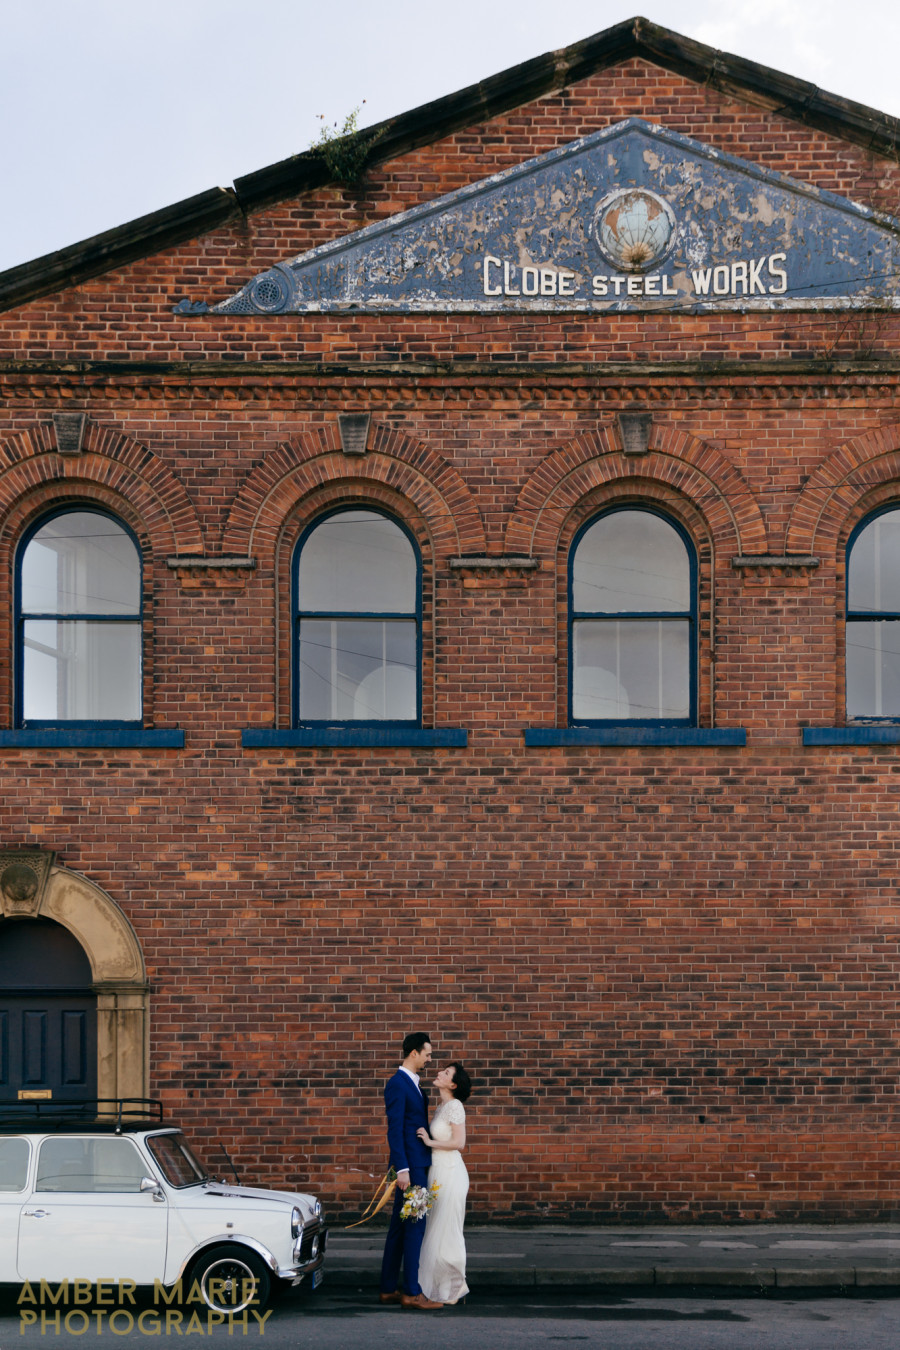 Rock Your Shot // Creative Wedding Photography Leeds